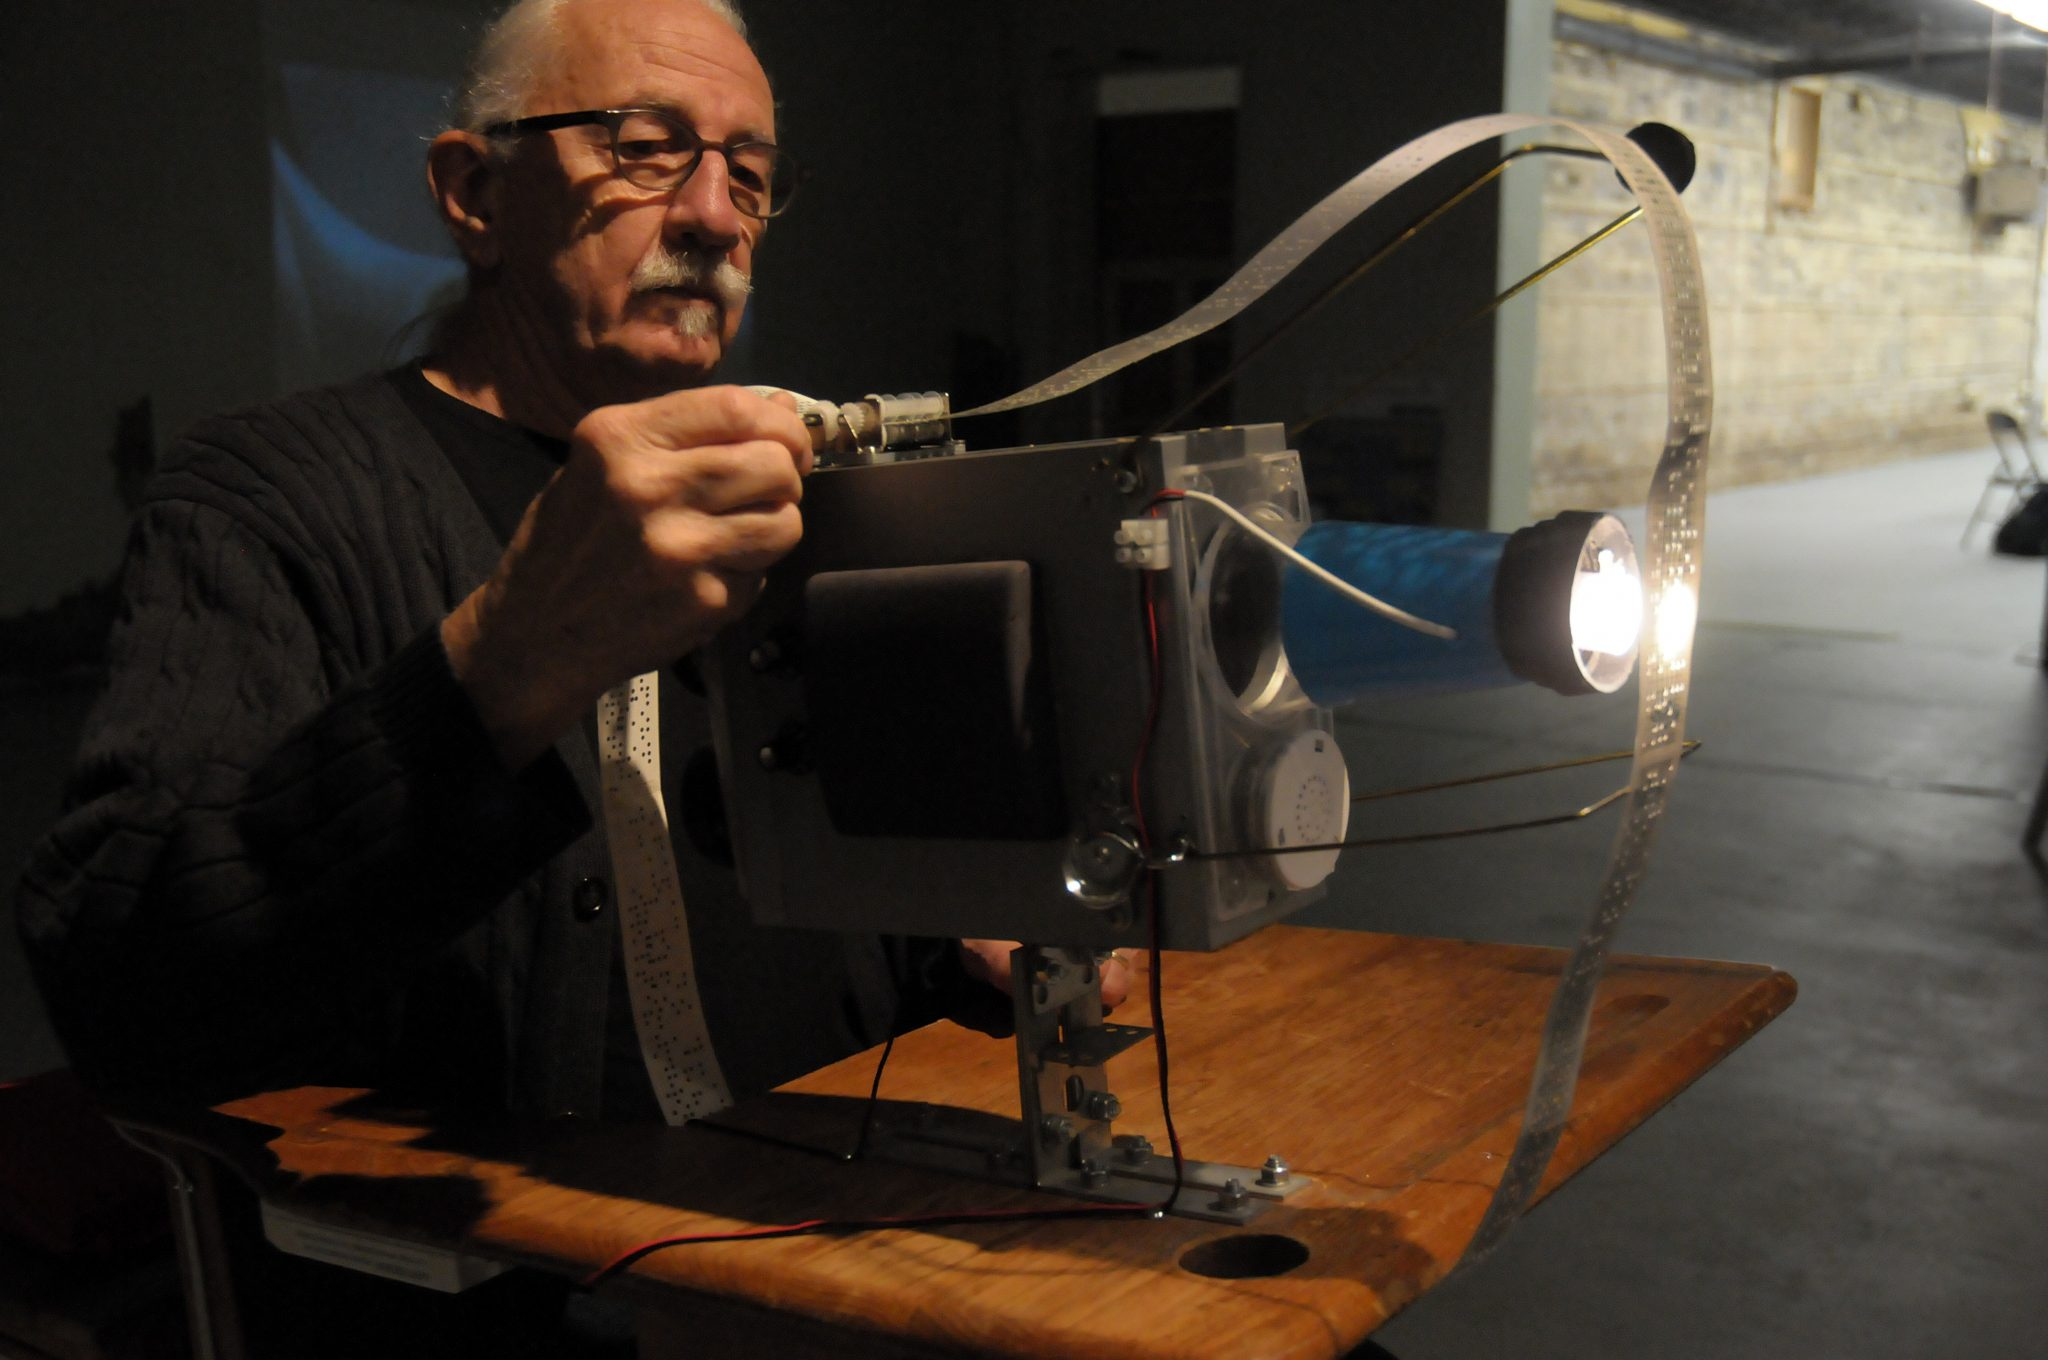 The image is a colour photograph of David Bobier, with his hair pulled back in a ponytail, wearing a black sweater and glasses. His right hand is extended and adjusting a Vibro-projector.